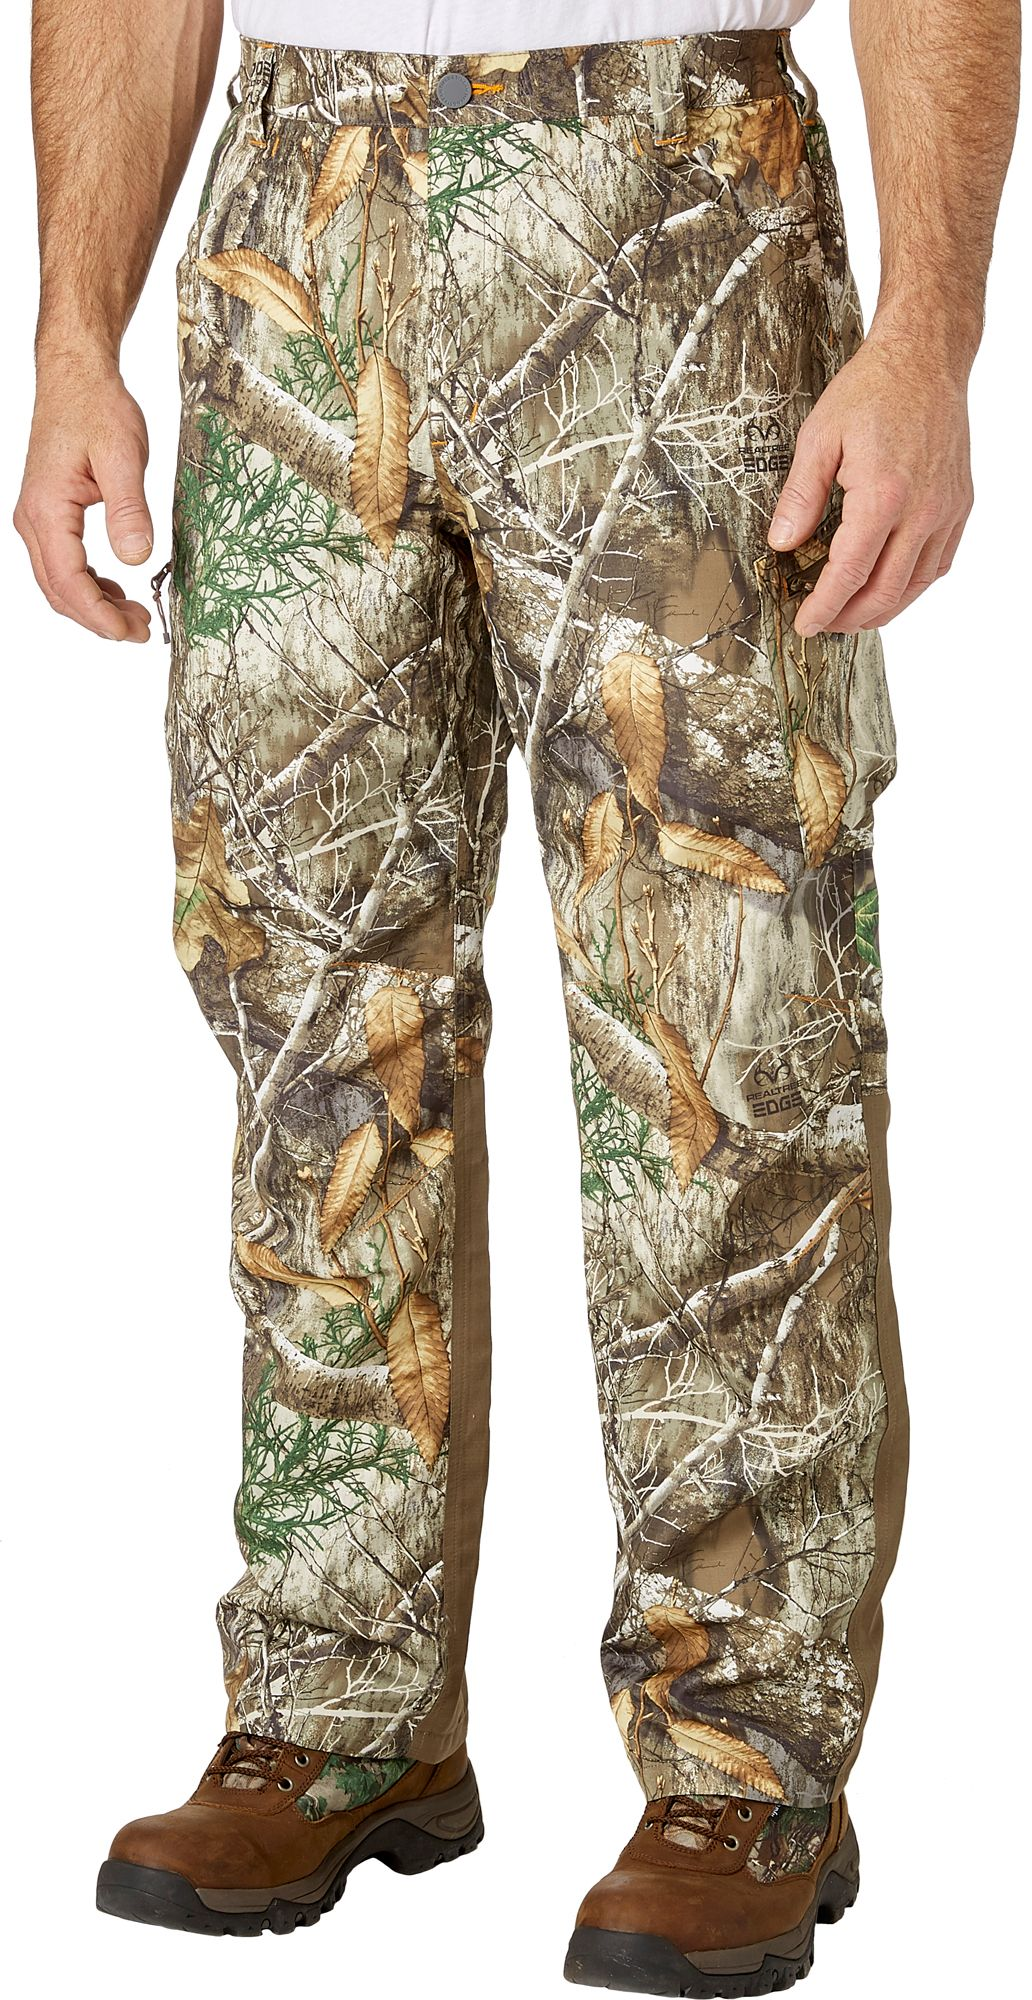 Field & Stream Men's Every Hunt Lightweight Cargo Pants, Size: Medium, Multi thumbnail